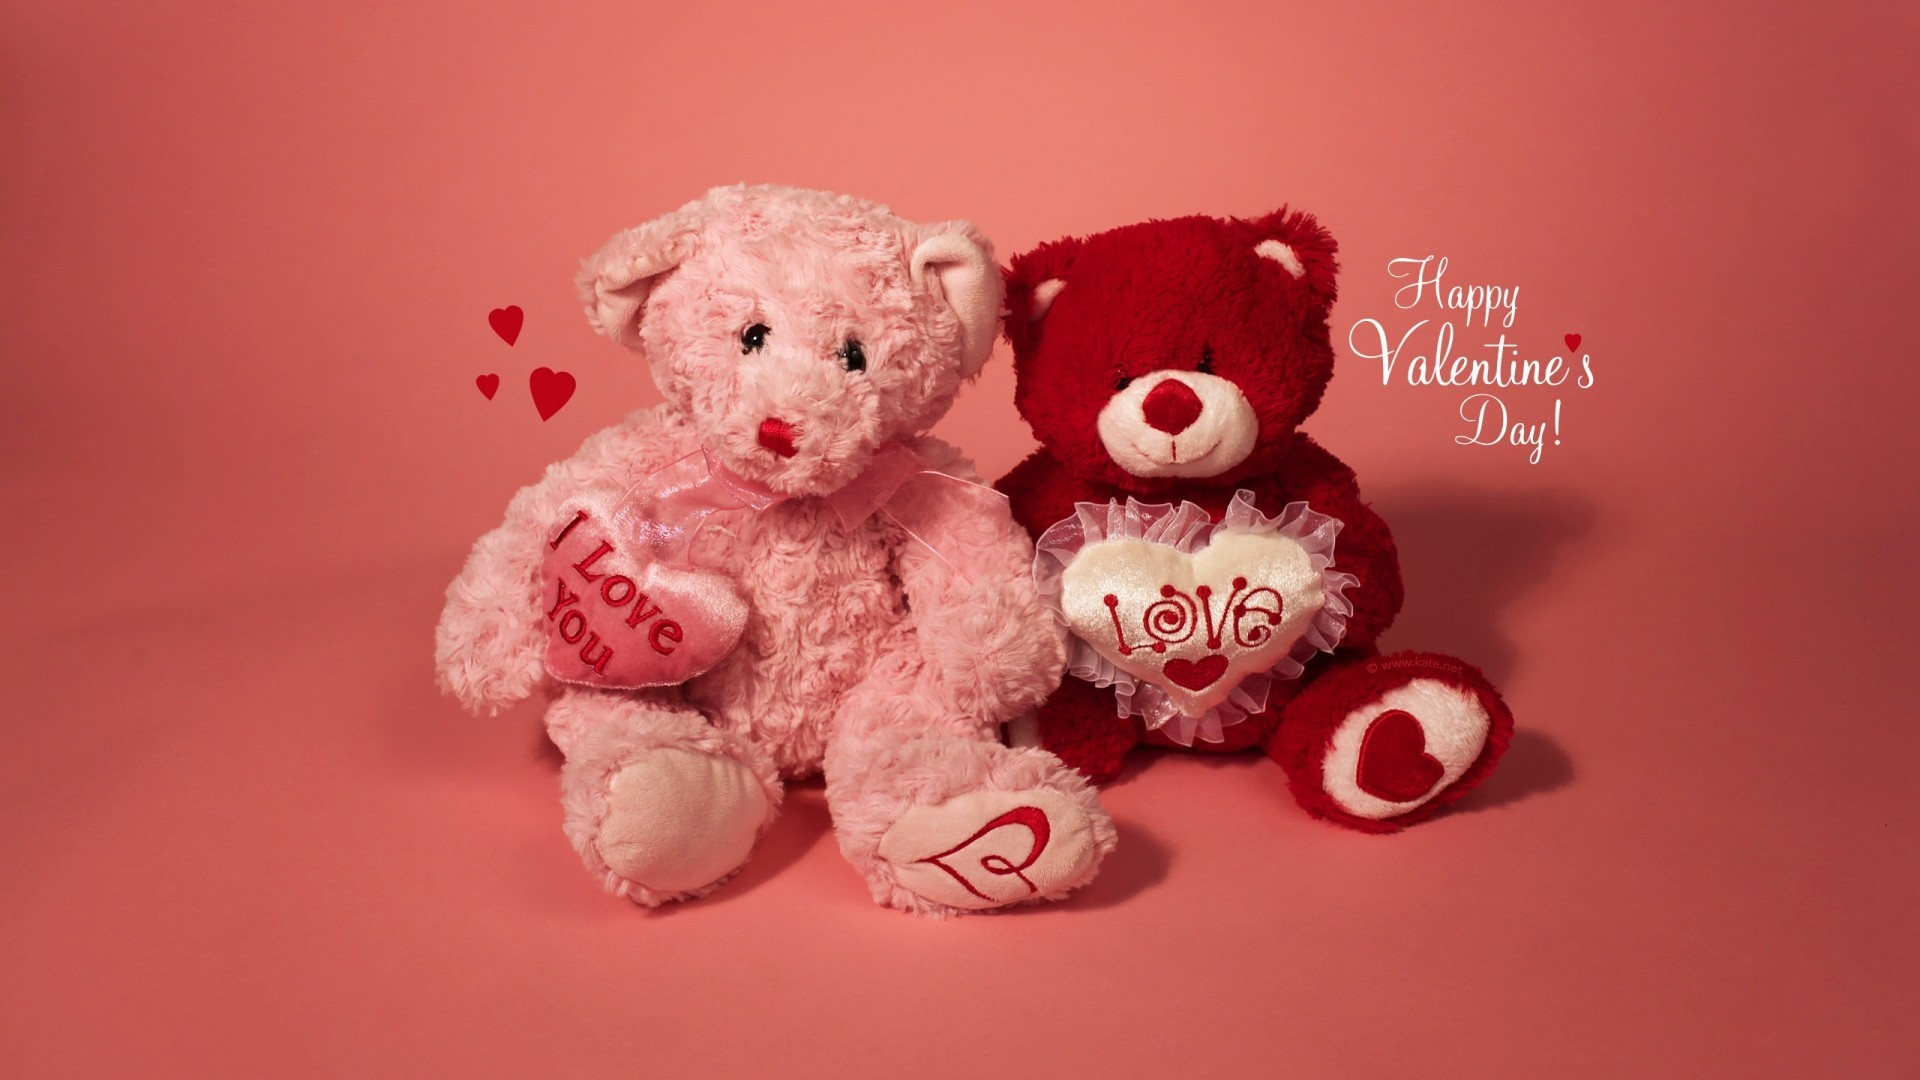 Free Download Valentines Day Teddy Bear Wallpaper – Valentines Day Teddy  Bear Wallpaper for Desktop.